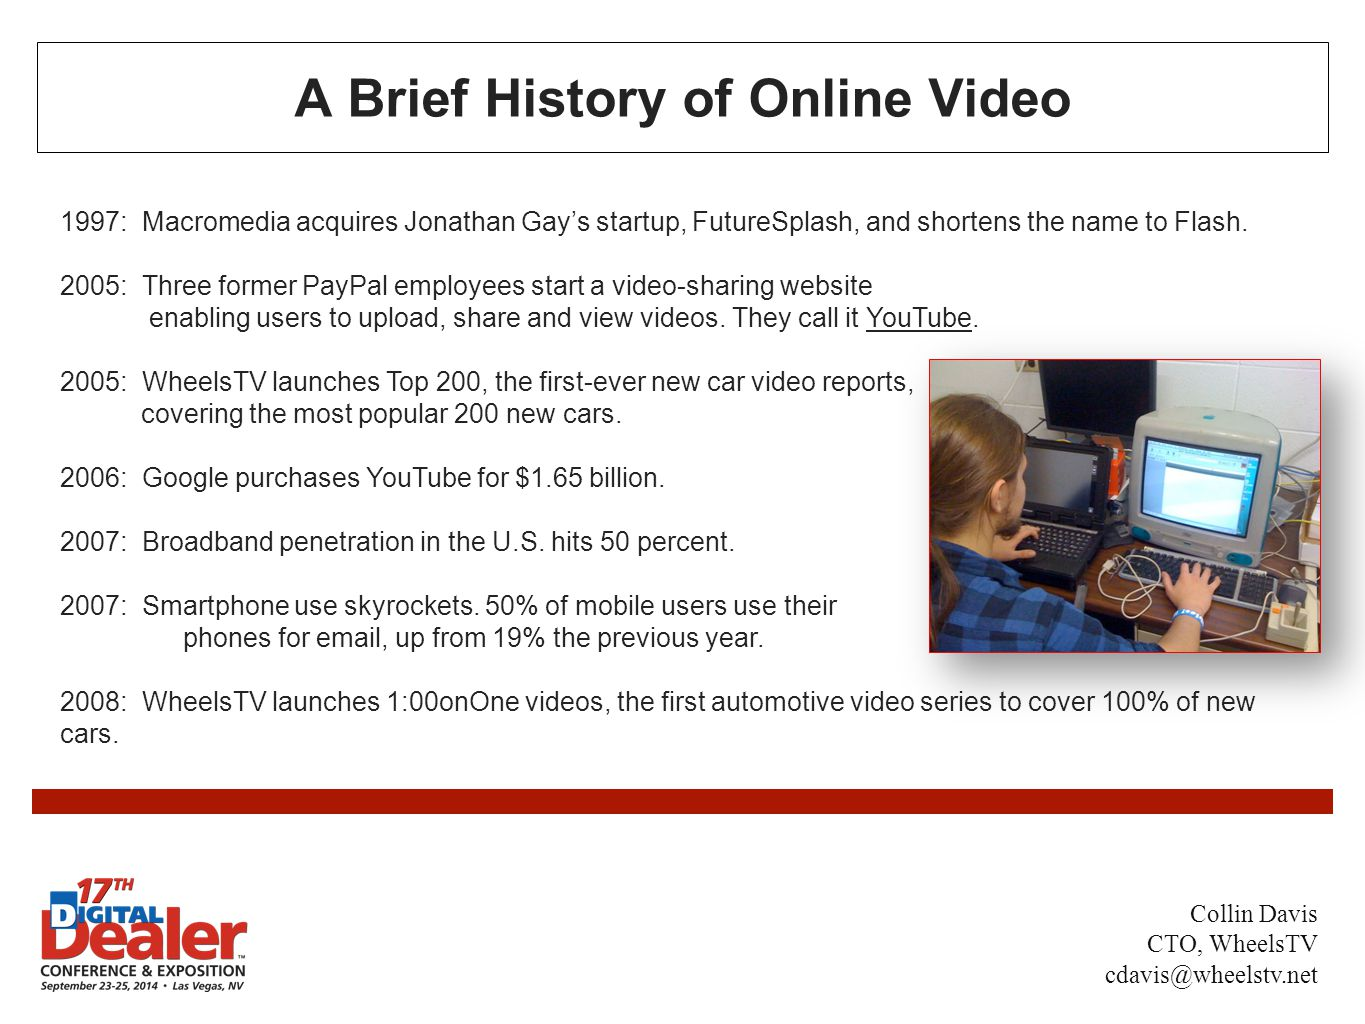 A Brief History of Online Video 1997: Macromedia acquires Jonathan Gay's startup, FutureSplash, and shortens the name to Flash.